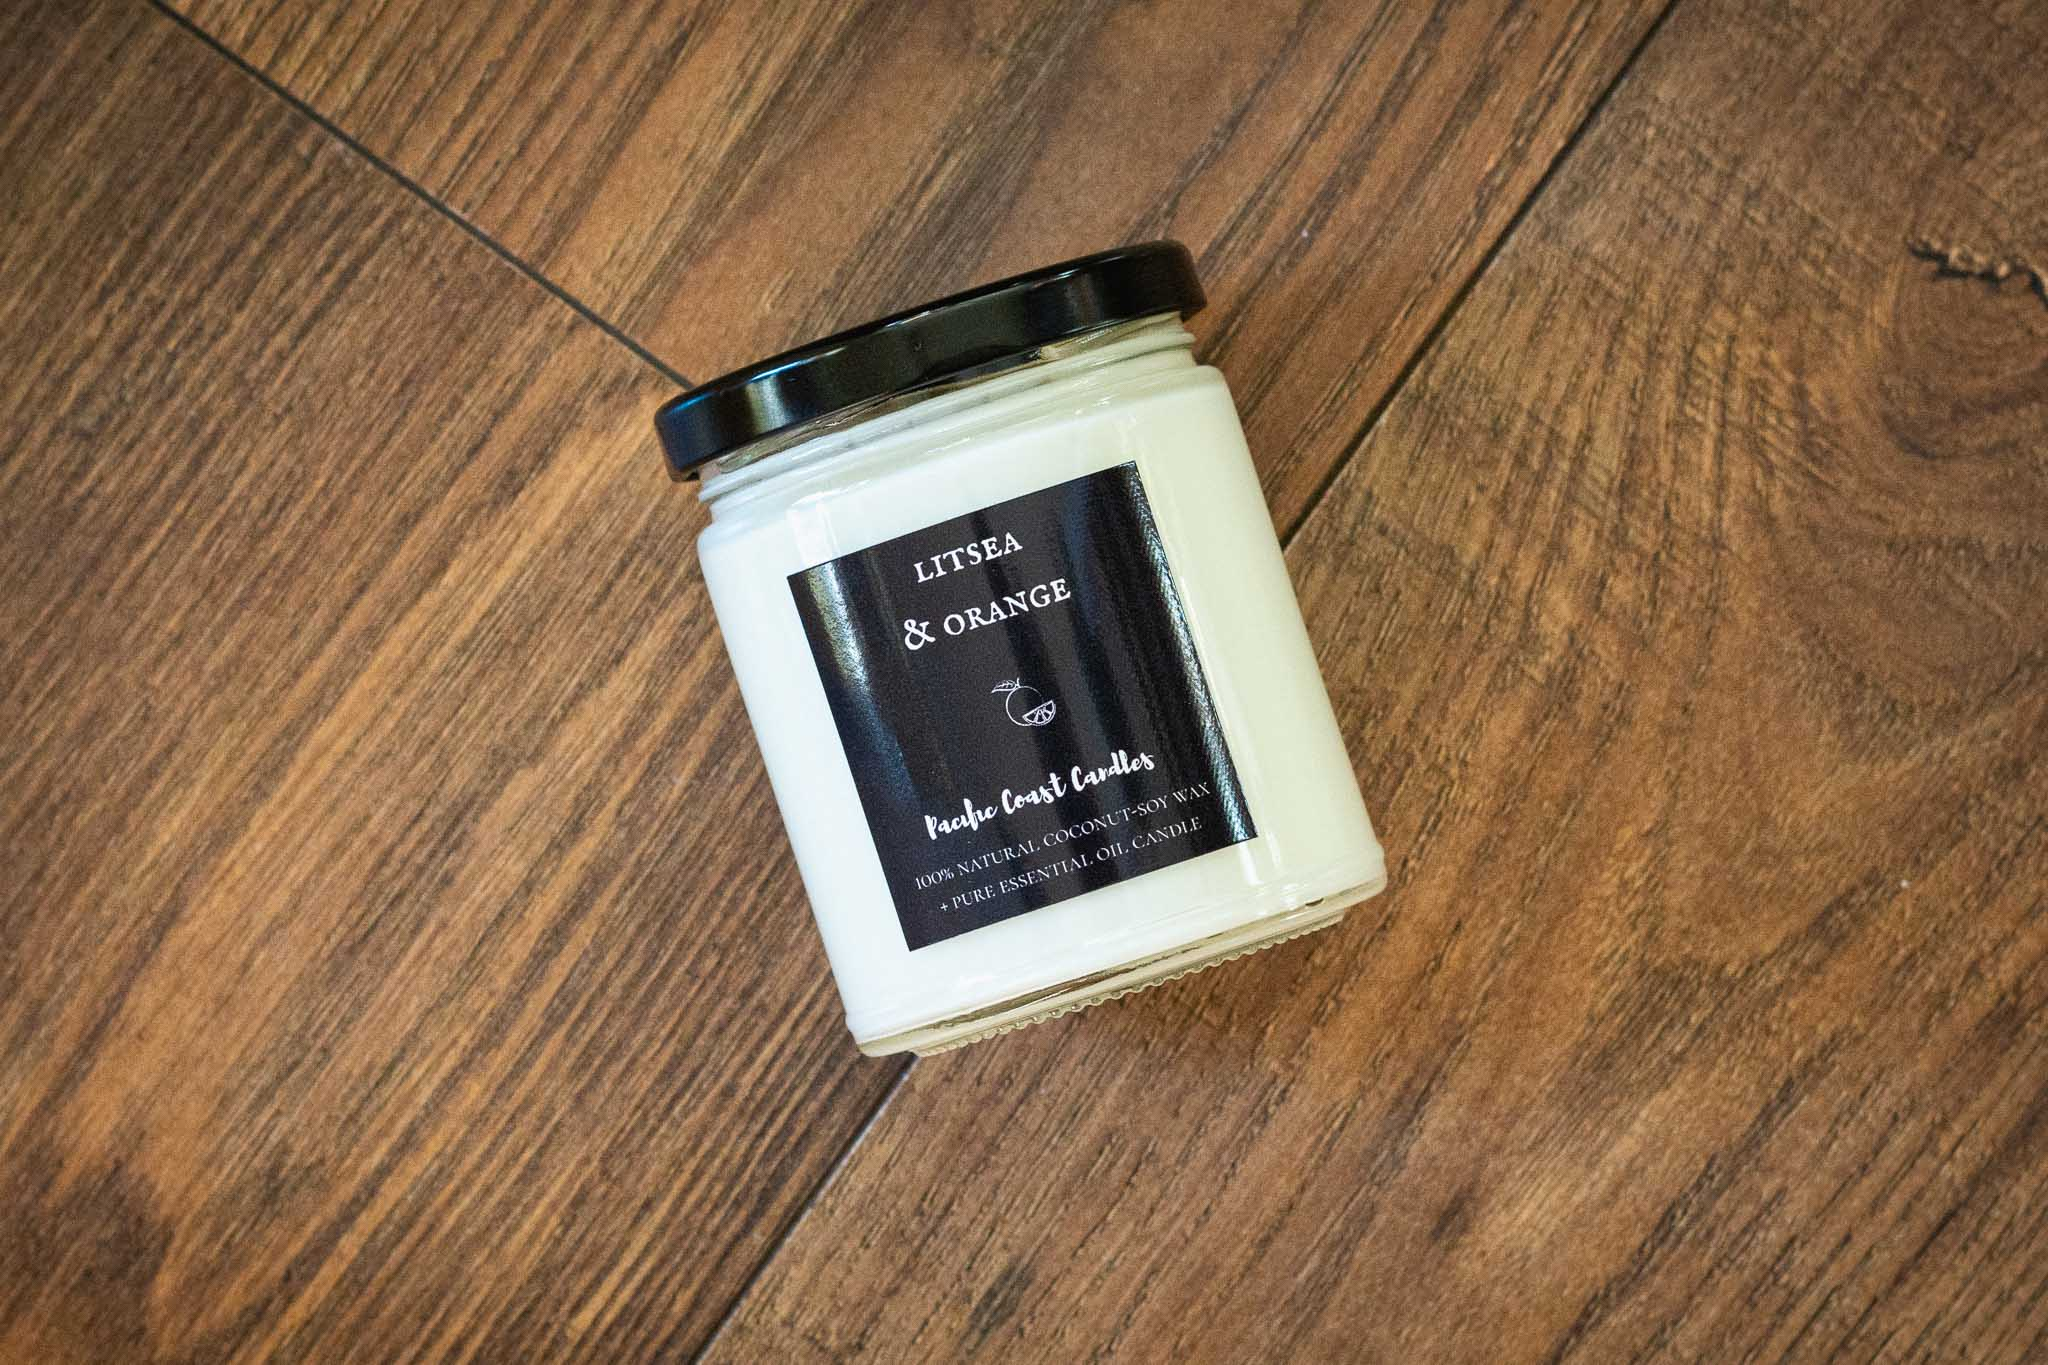 Coconut Soy Candles by Pacific Coast Candles